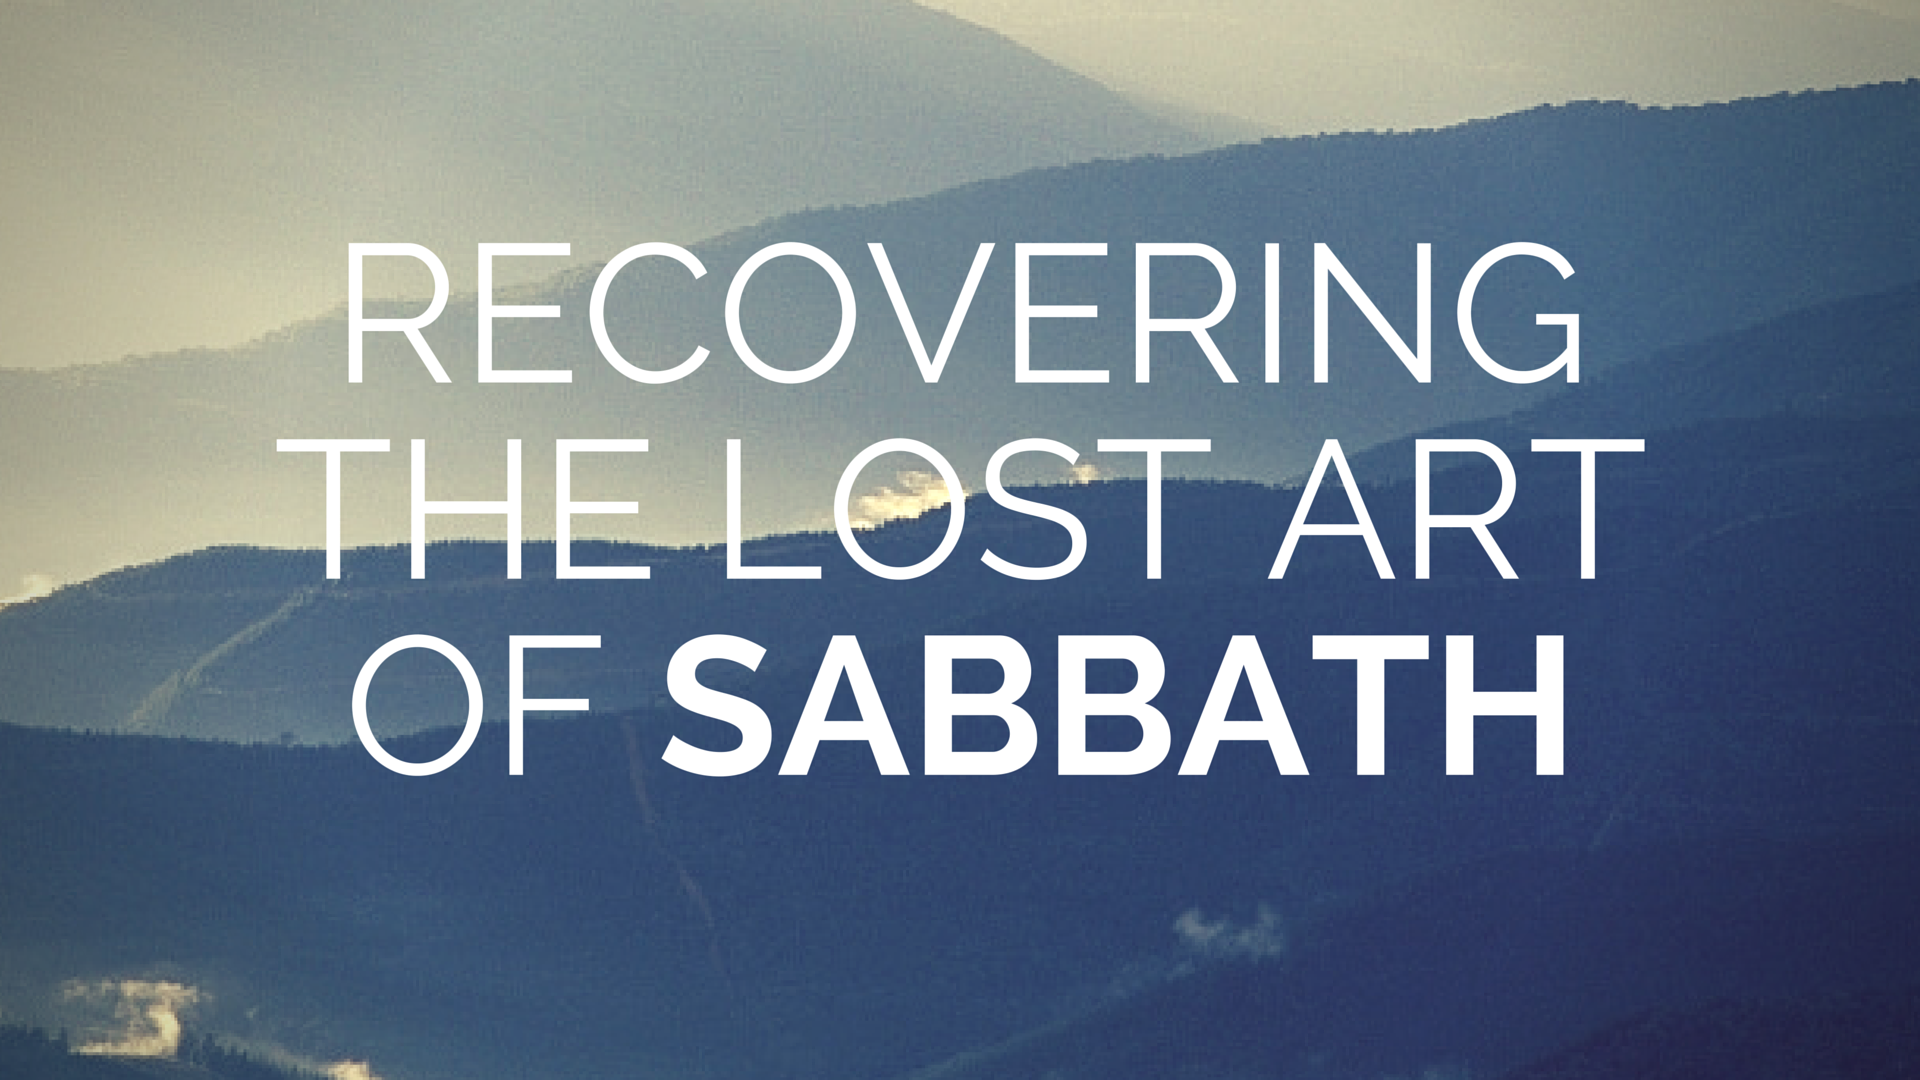 Recovering the Lost Art of Sabbath